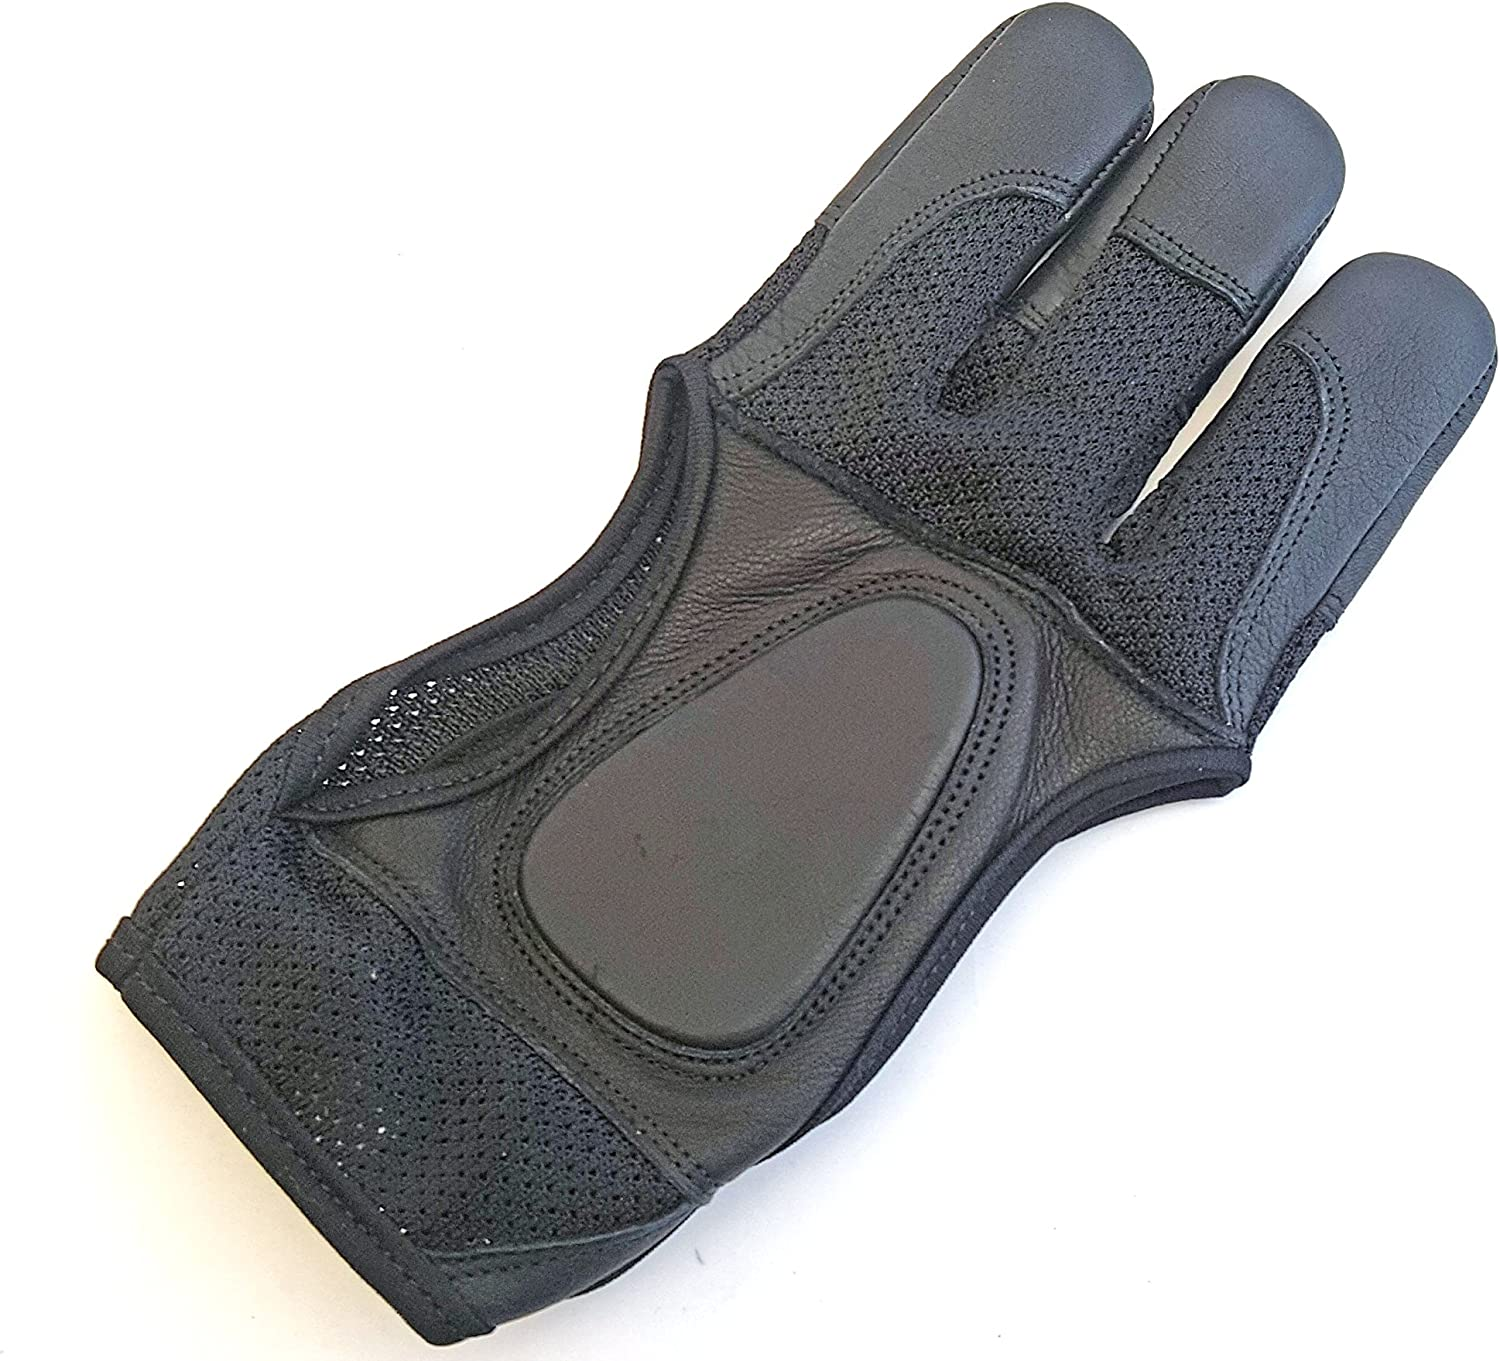 starlingukp Quality Traditional Genuine Leather Archery Gloves Full Tip Shooting Gloves.